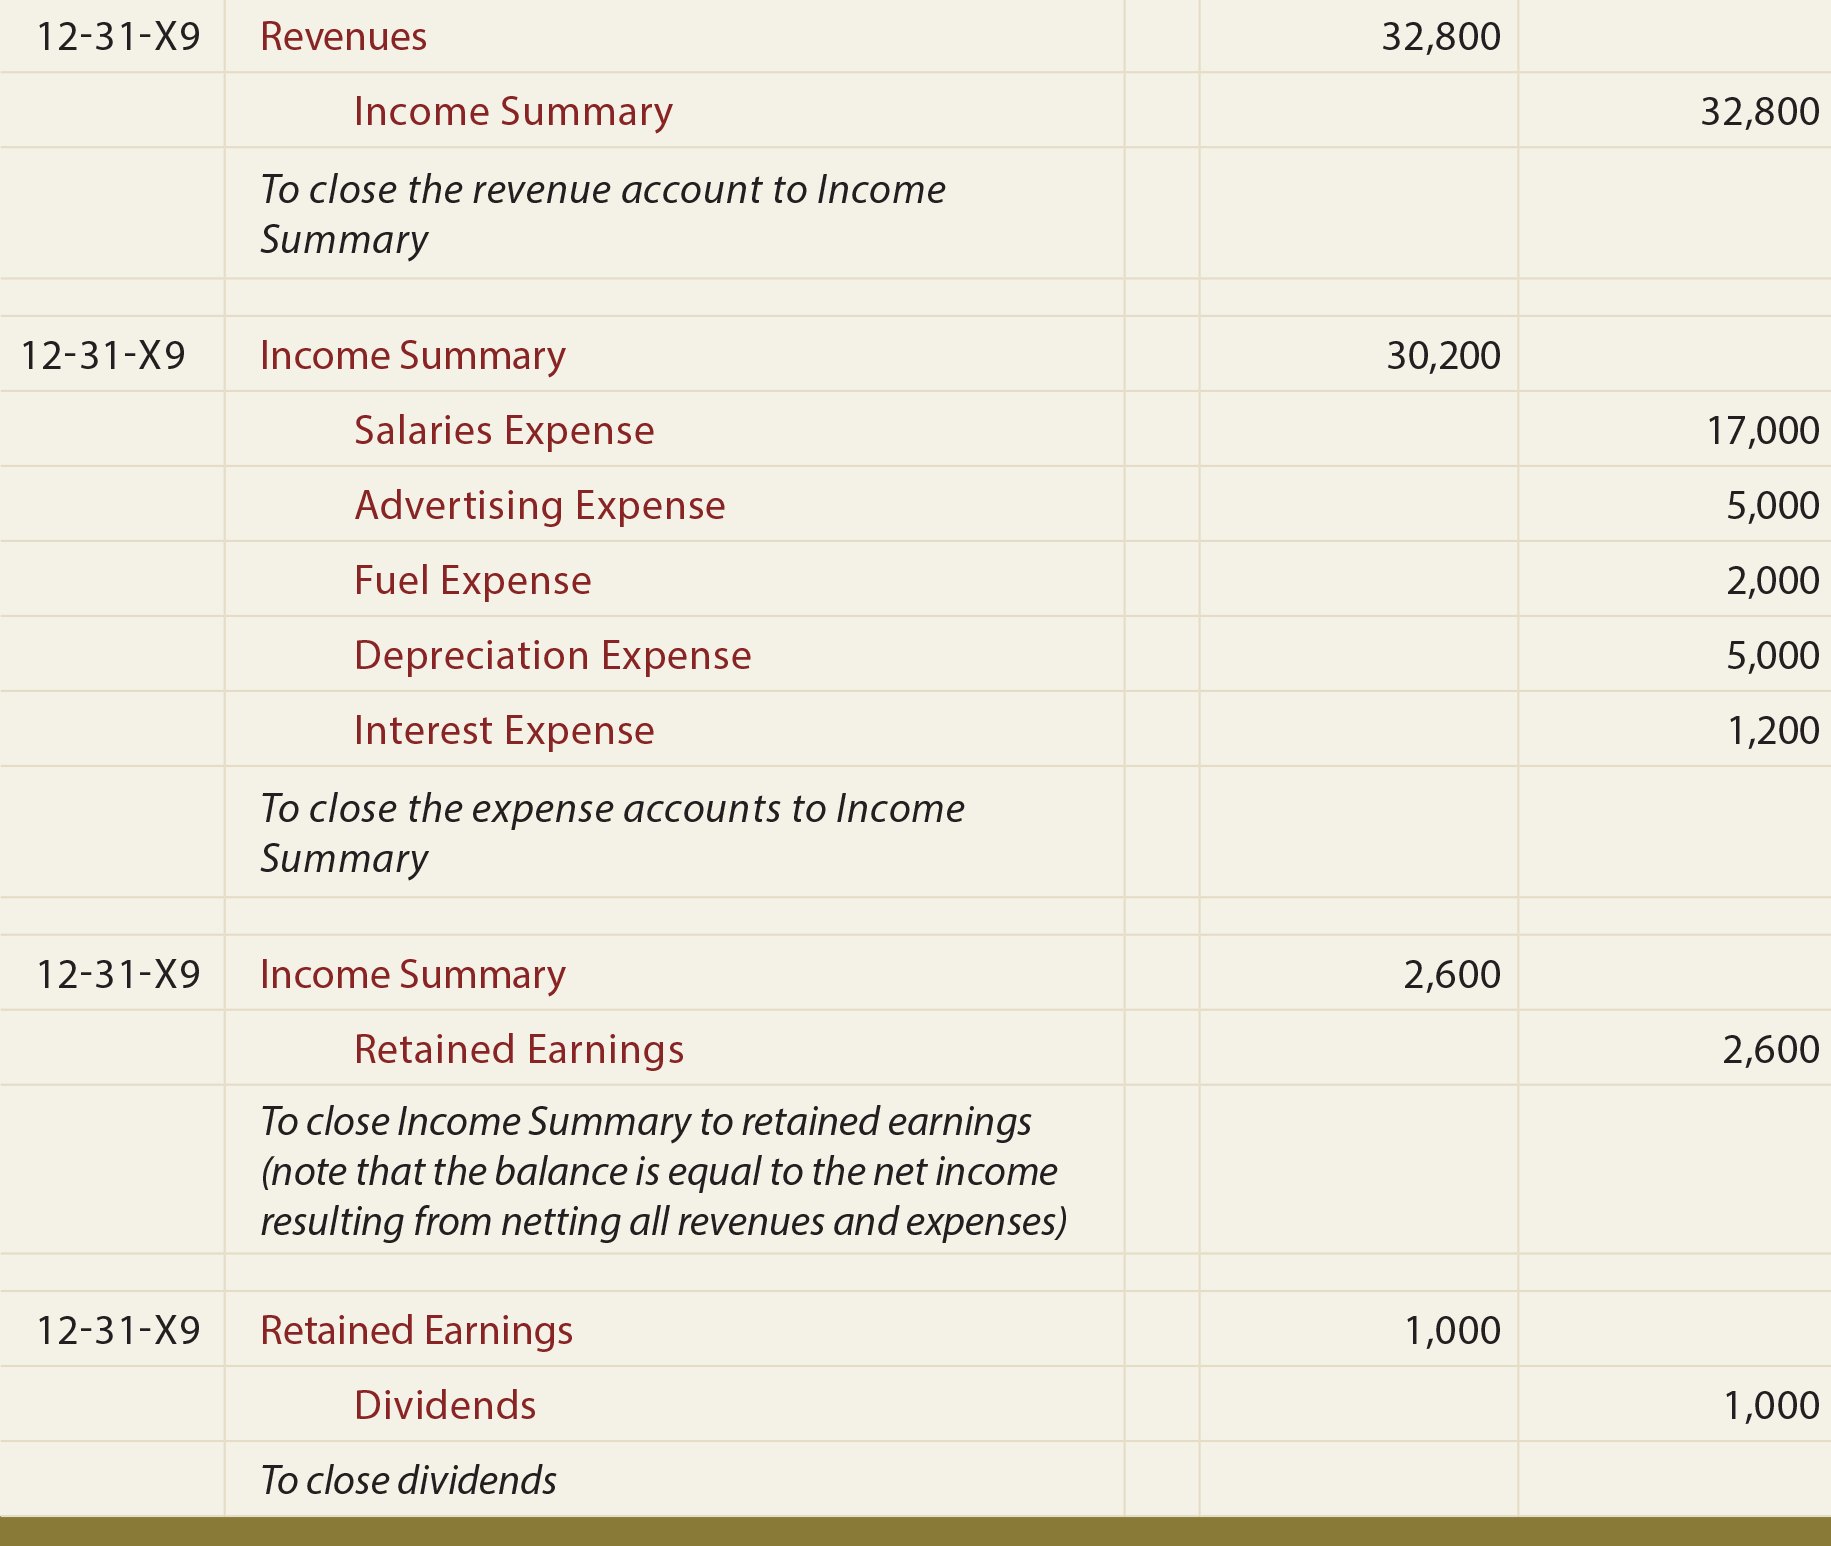 Journal Entry - To close the revenue account to Income Summary